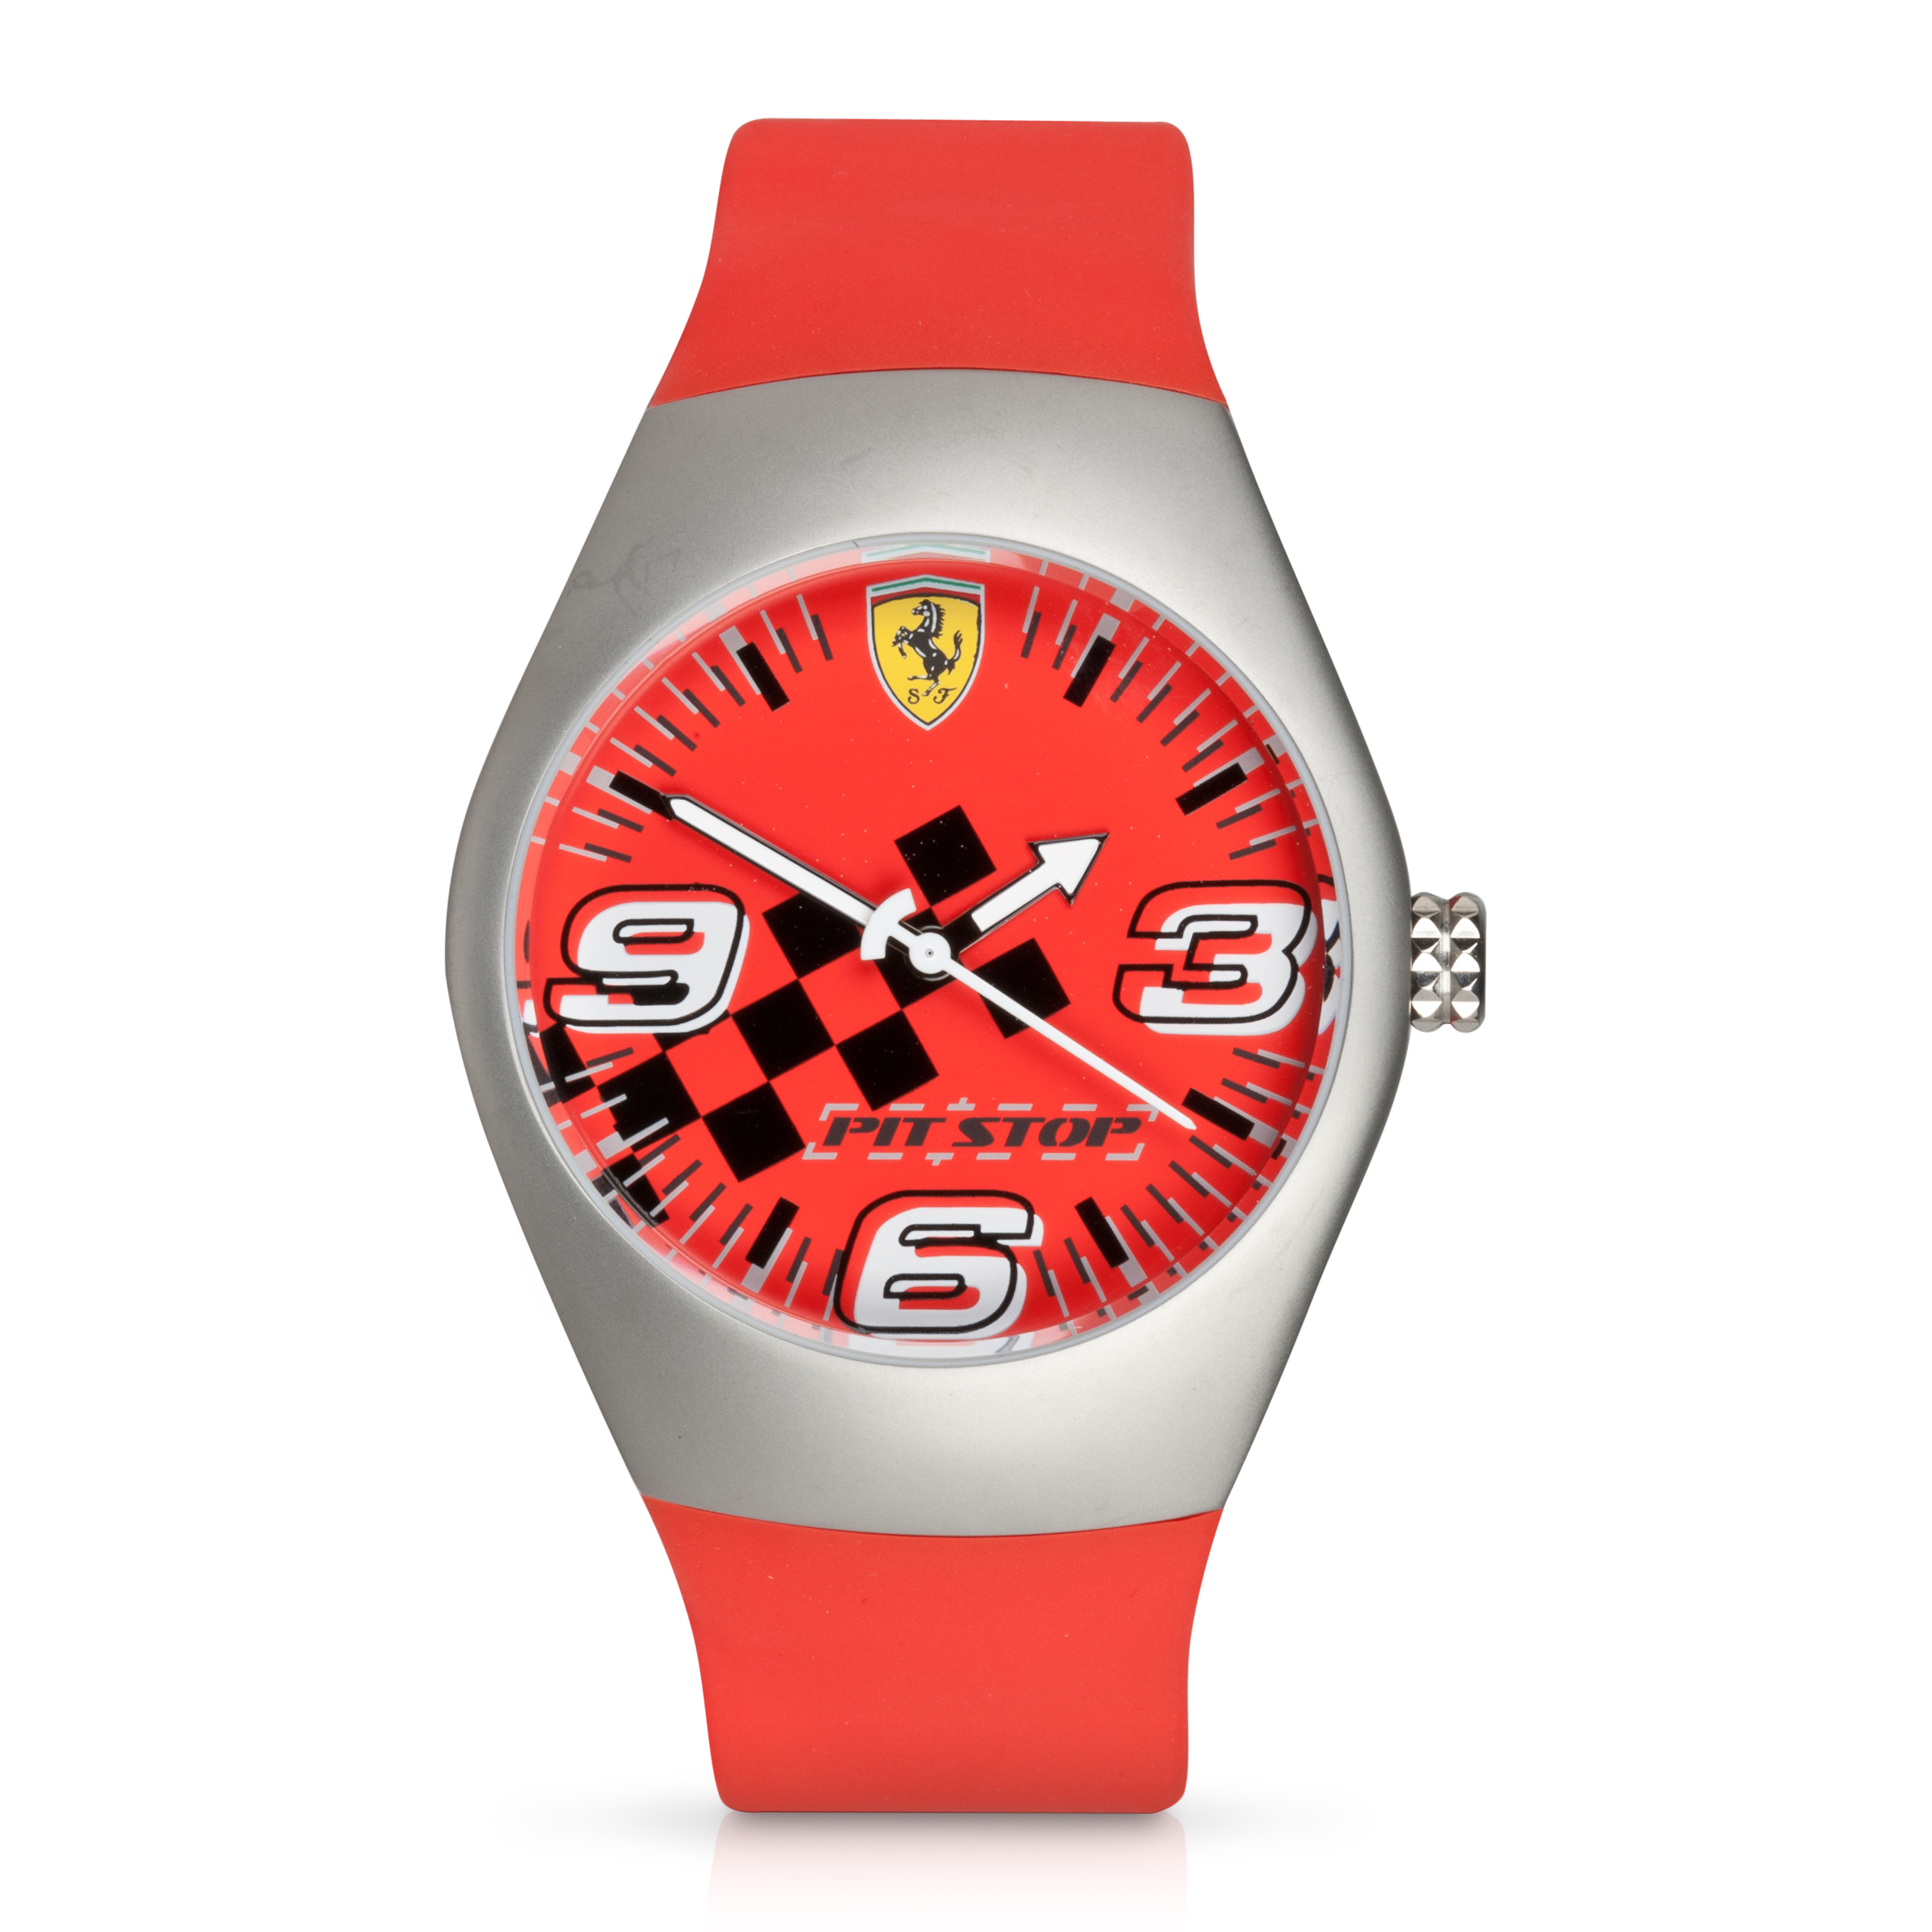 Ferrari Pit Stop Steel Case Watch - Red/Red